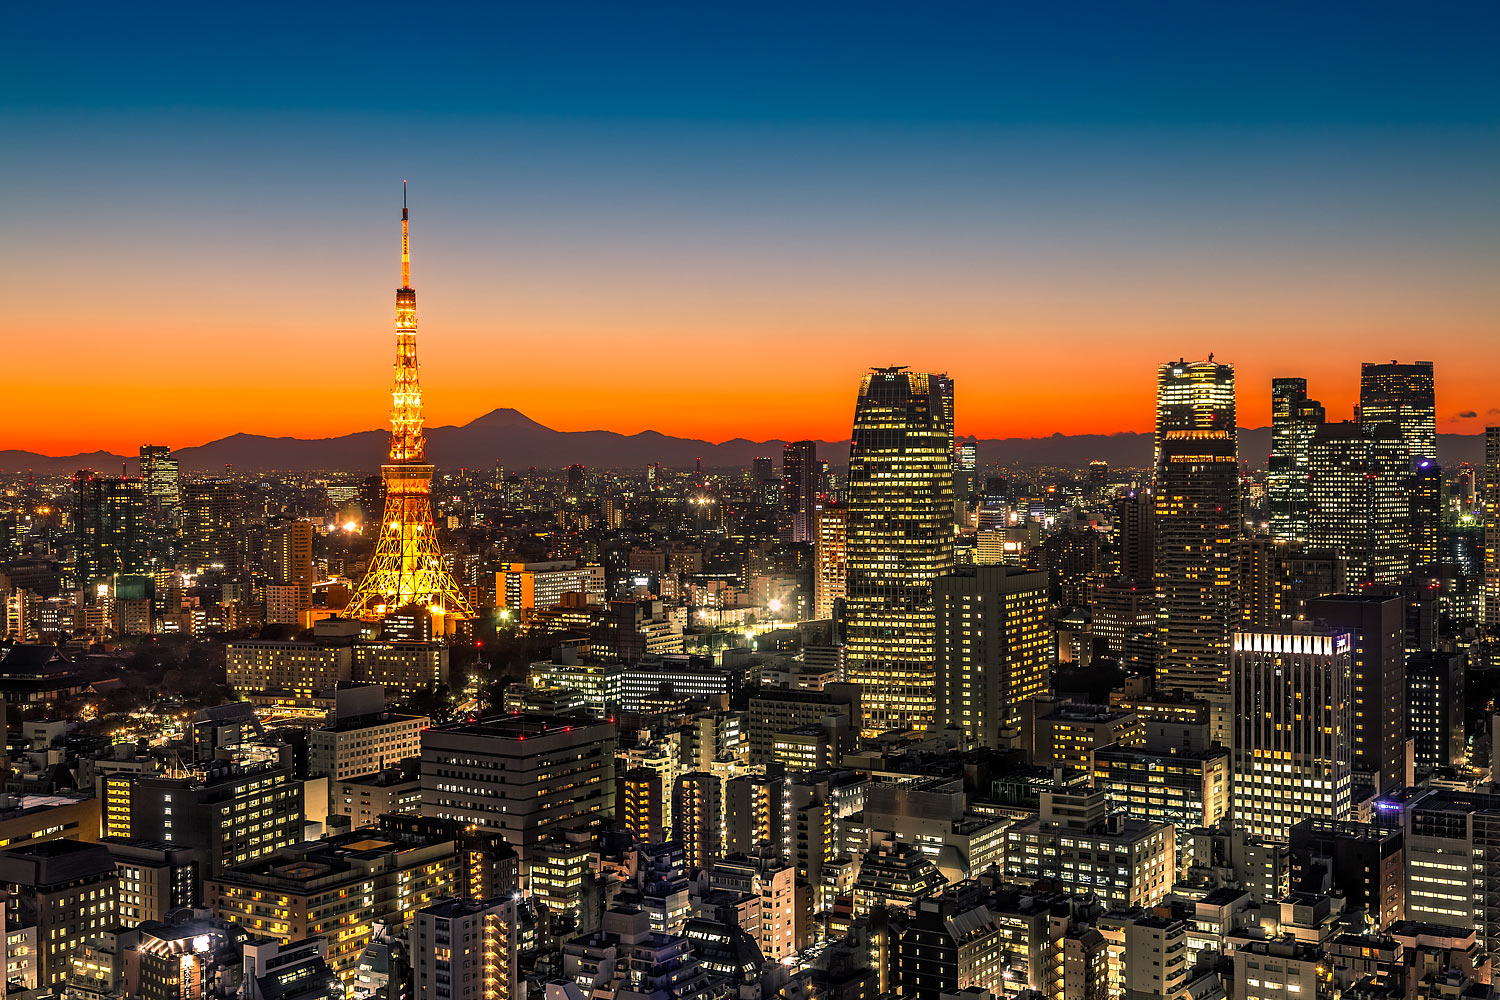 Panorama of Tokyo at Sunset with Mt. Fuji on the Horizon